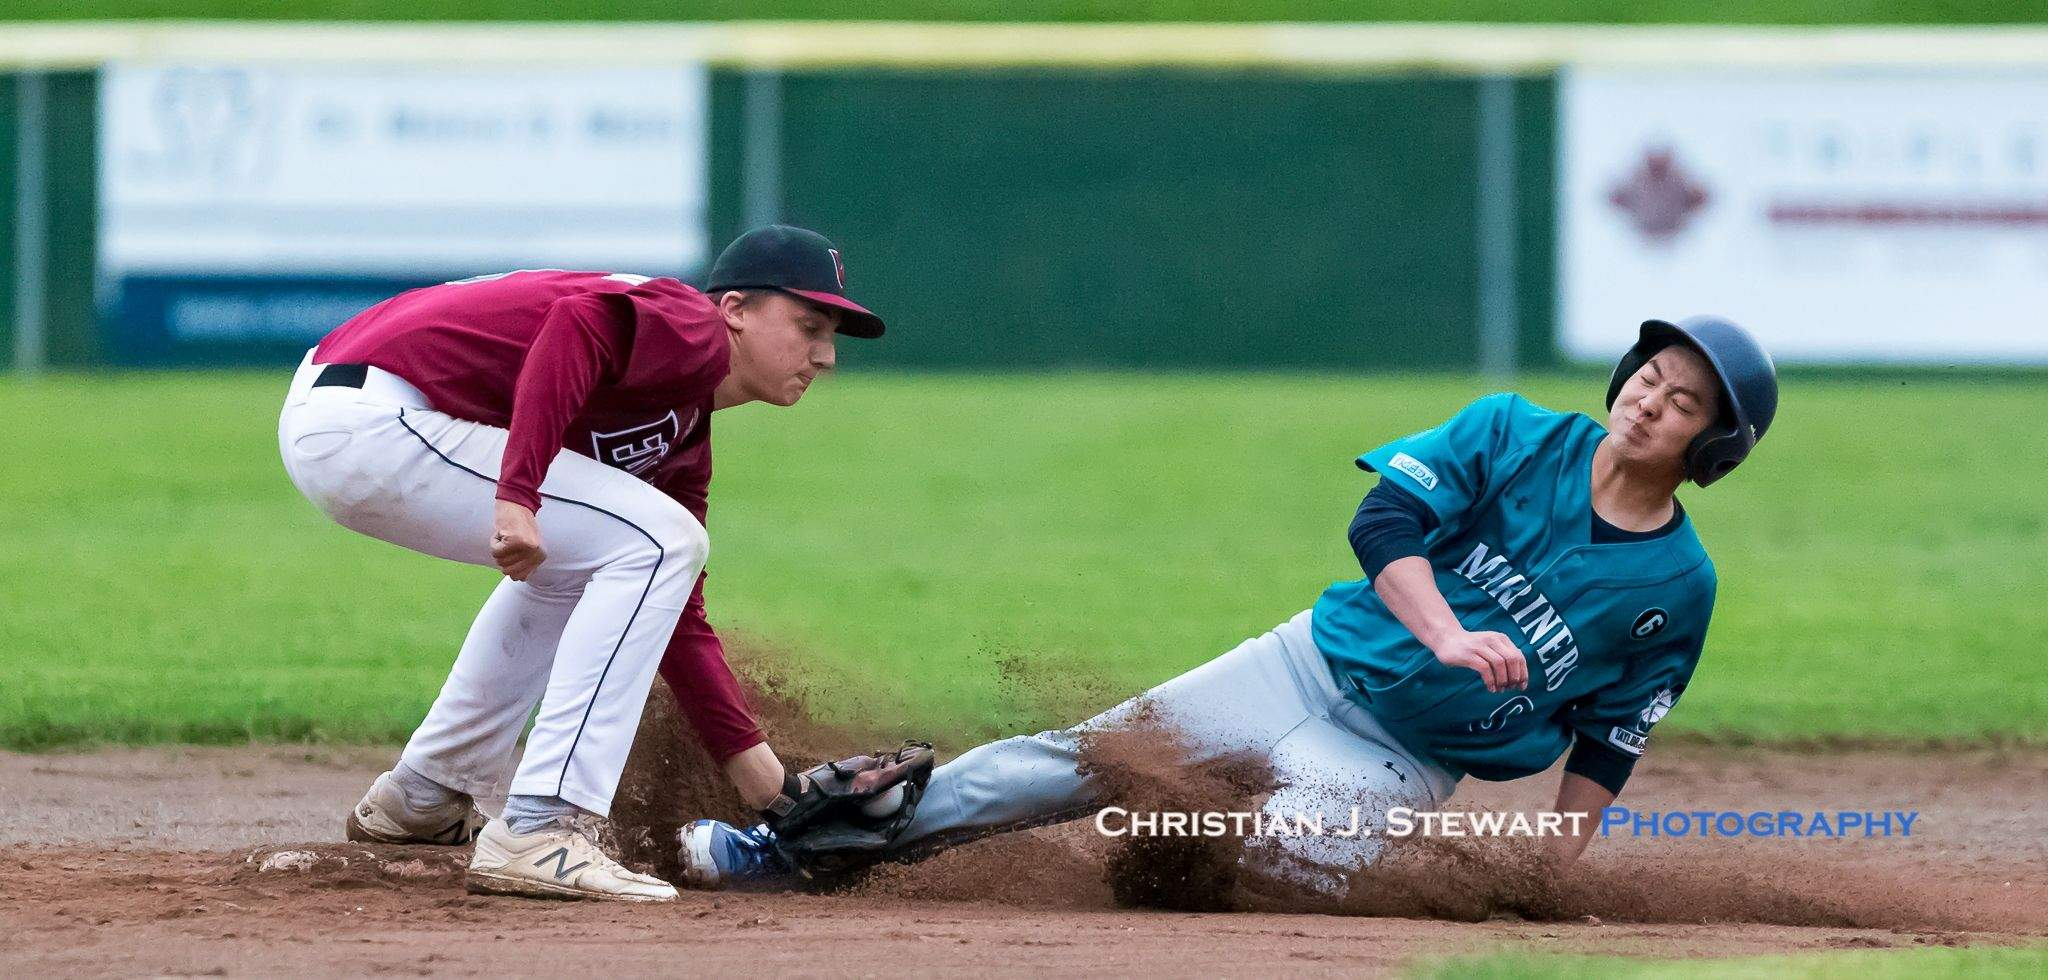 Victoria Mariners baserunner Rei Kumura (9) is tagged out by Eagles second baseman Chad Hegland on this play Tuesday (Photo: Christian J. Stewart)